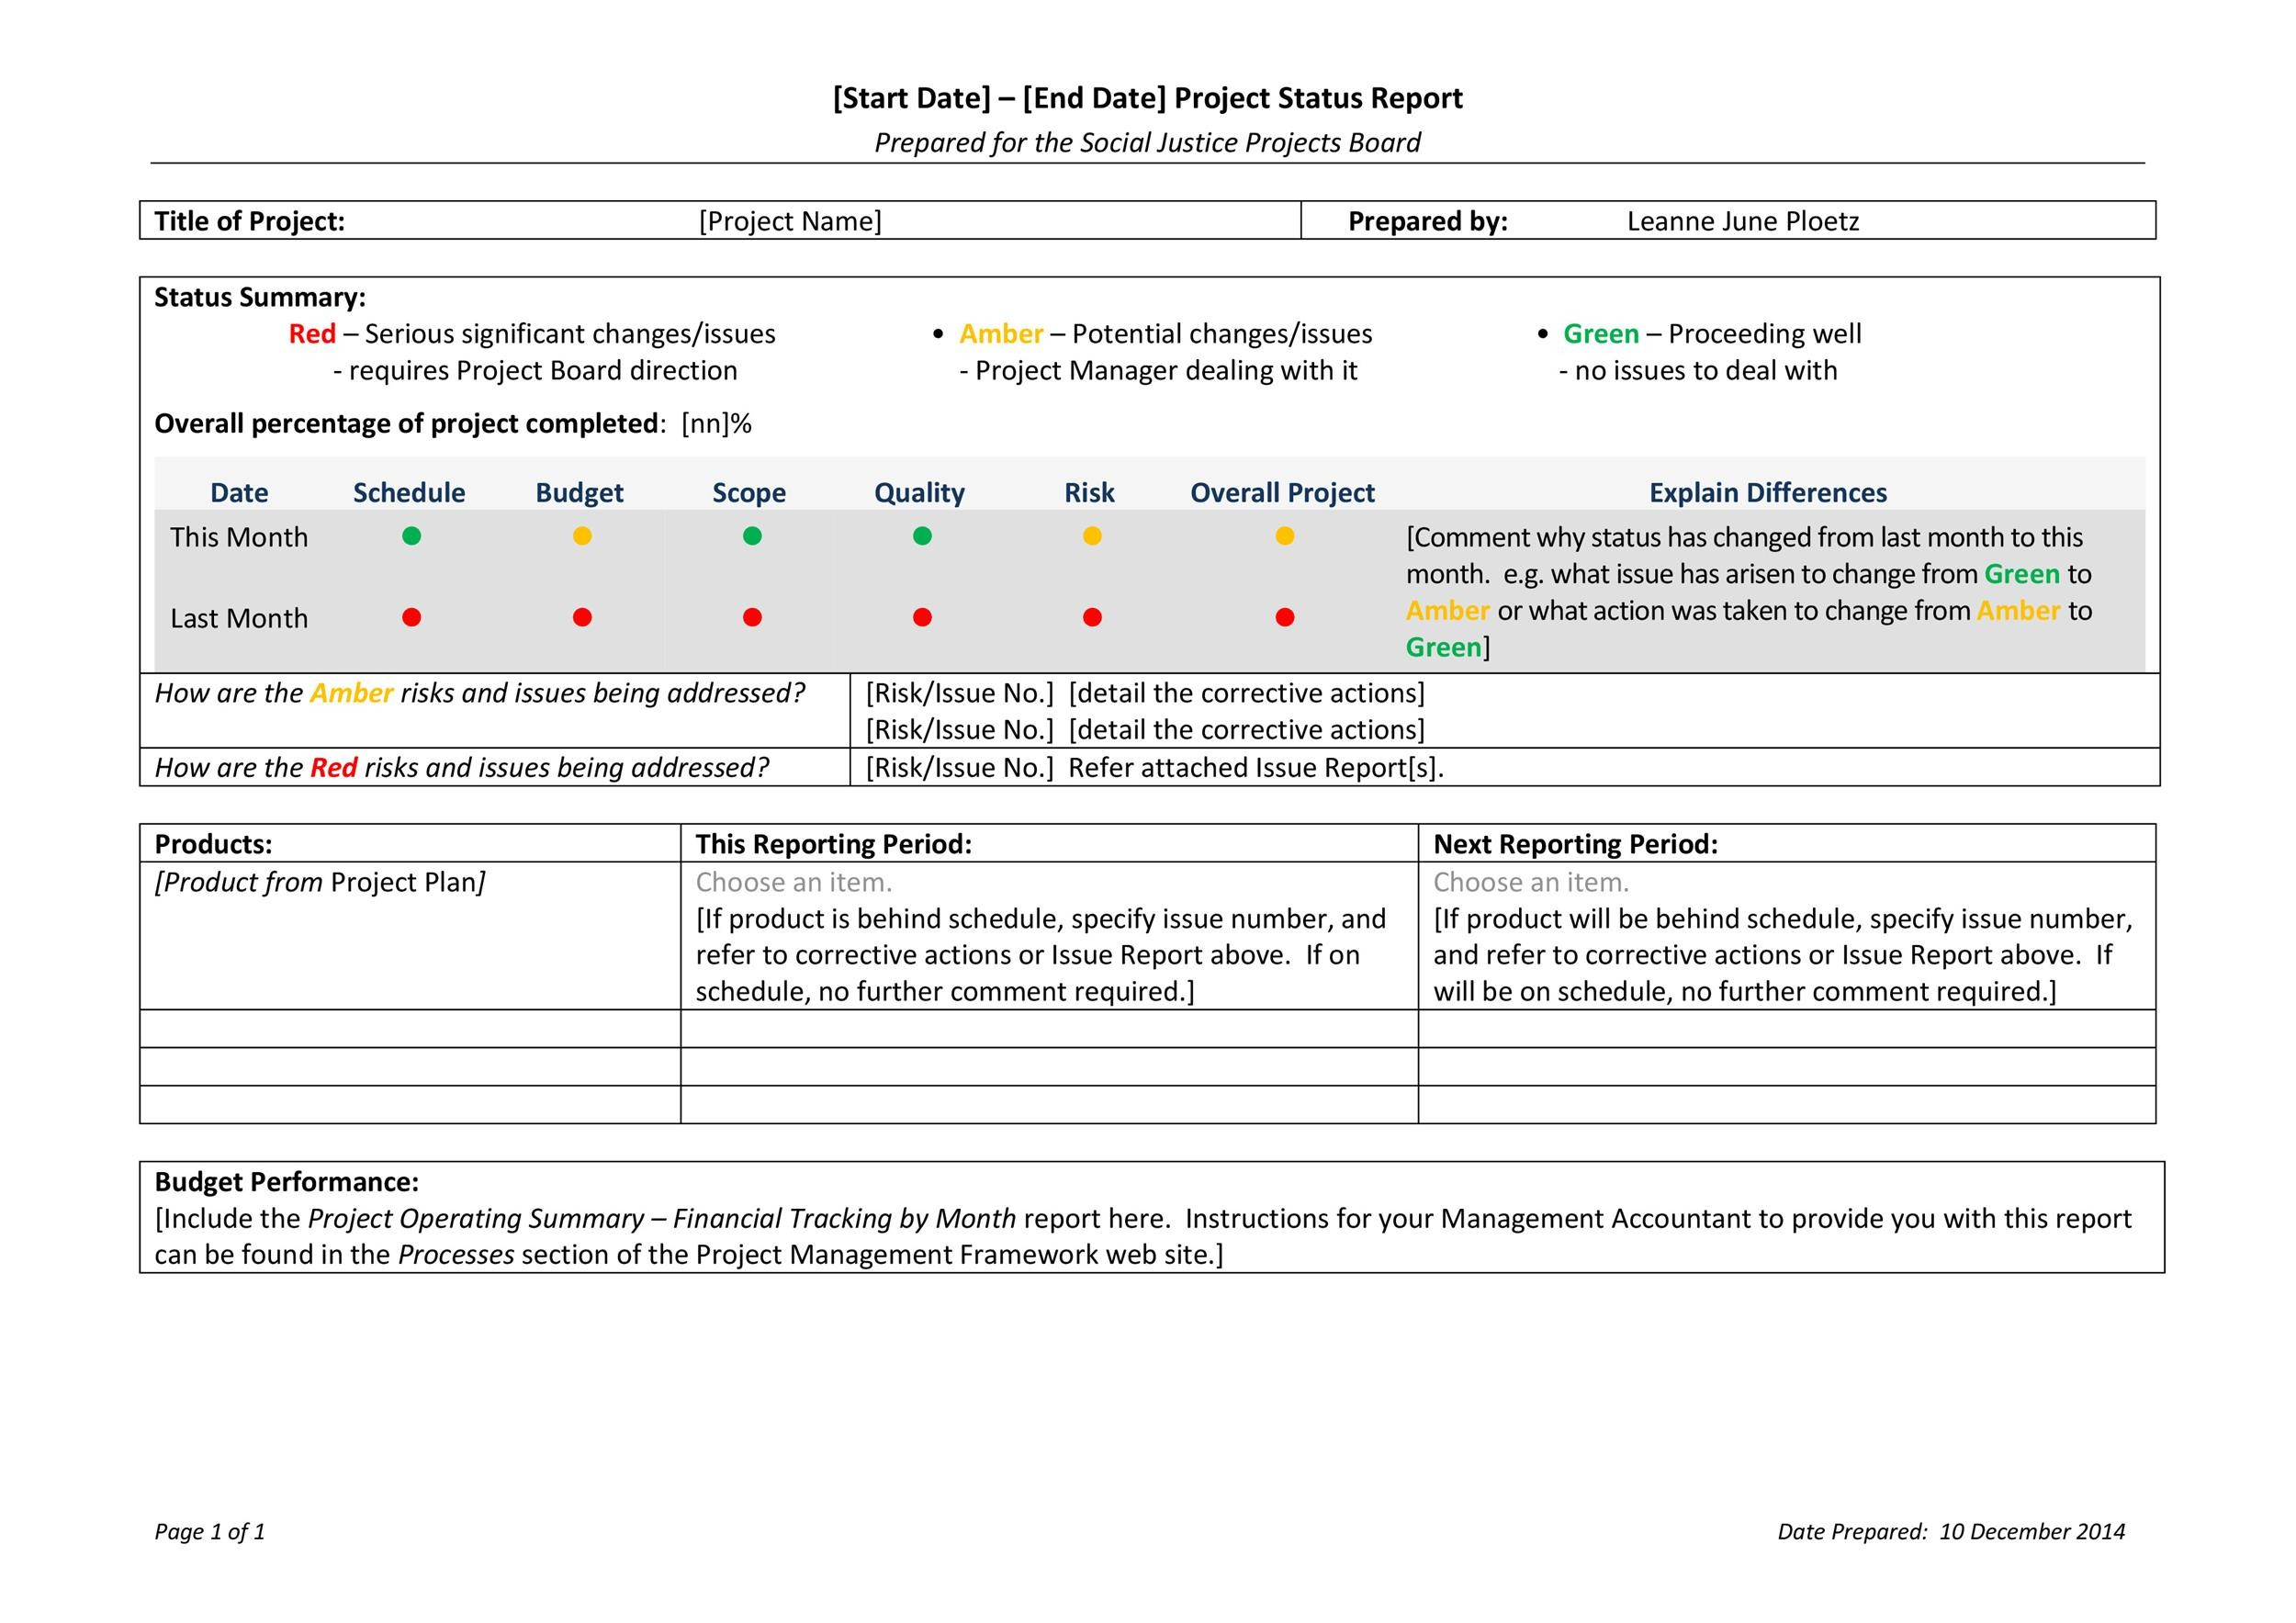 40+ Project Status Report Templates Word, Excel, PPT ᐅ Template Lab